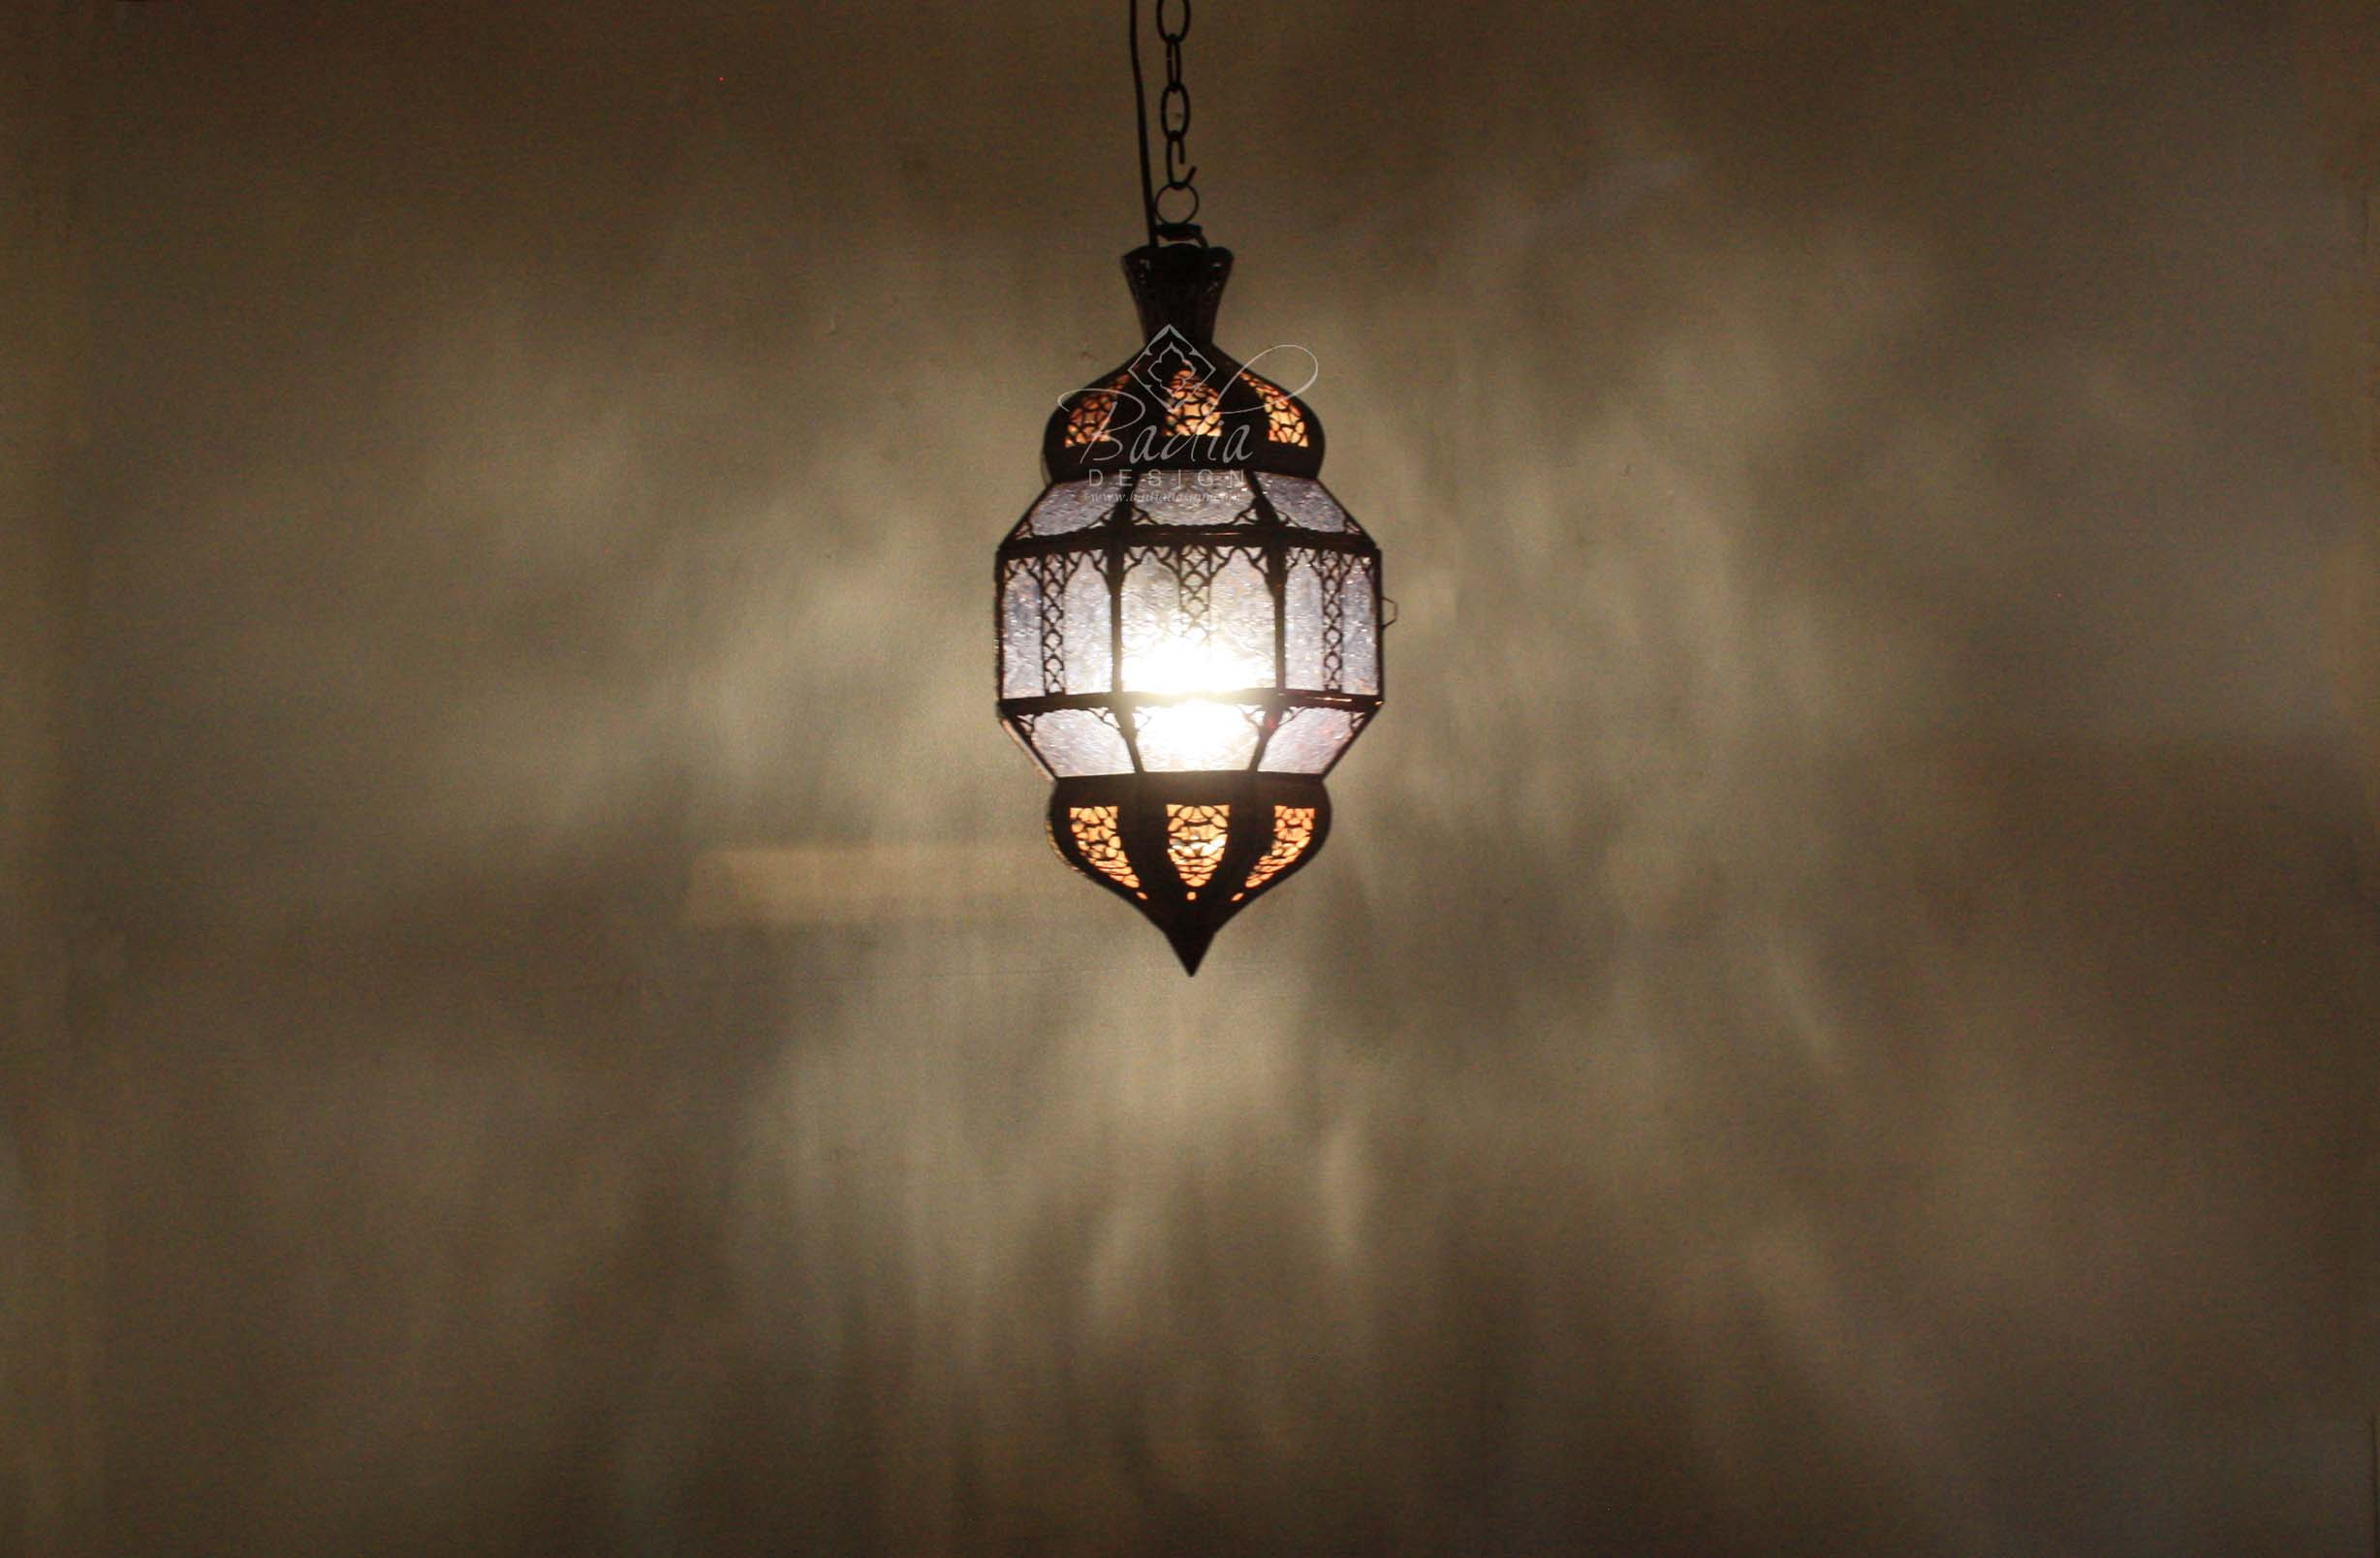 moroccan-party-lights-rental-lig365-3b.jpg